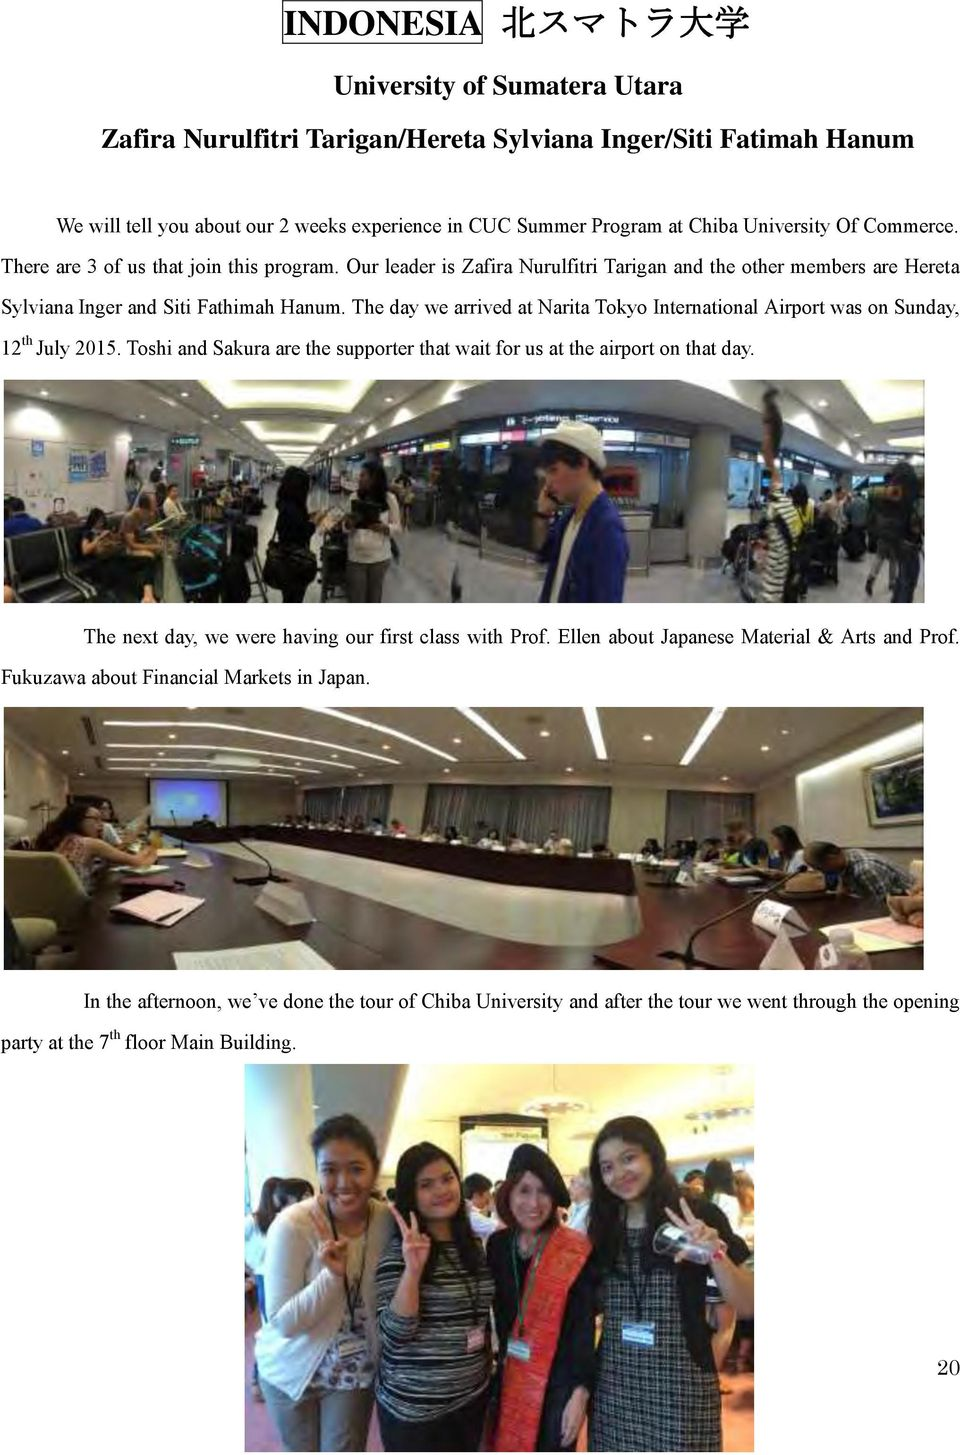 The day we arrived at Narita Tokyo International Airport was on Sunday, 12 th July 2015. Toshi and Sakura are the supporter that wait for us at the airport on that day.